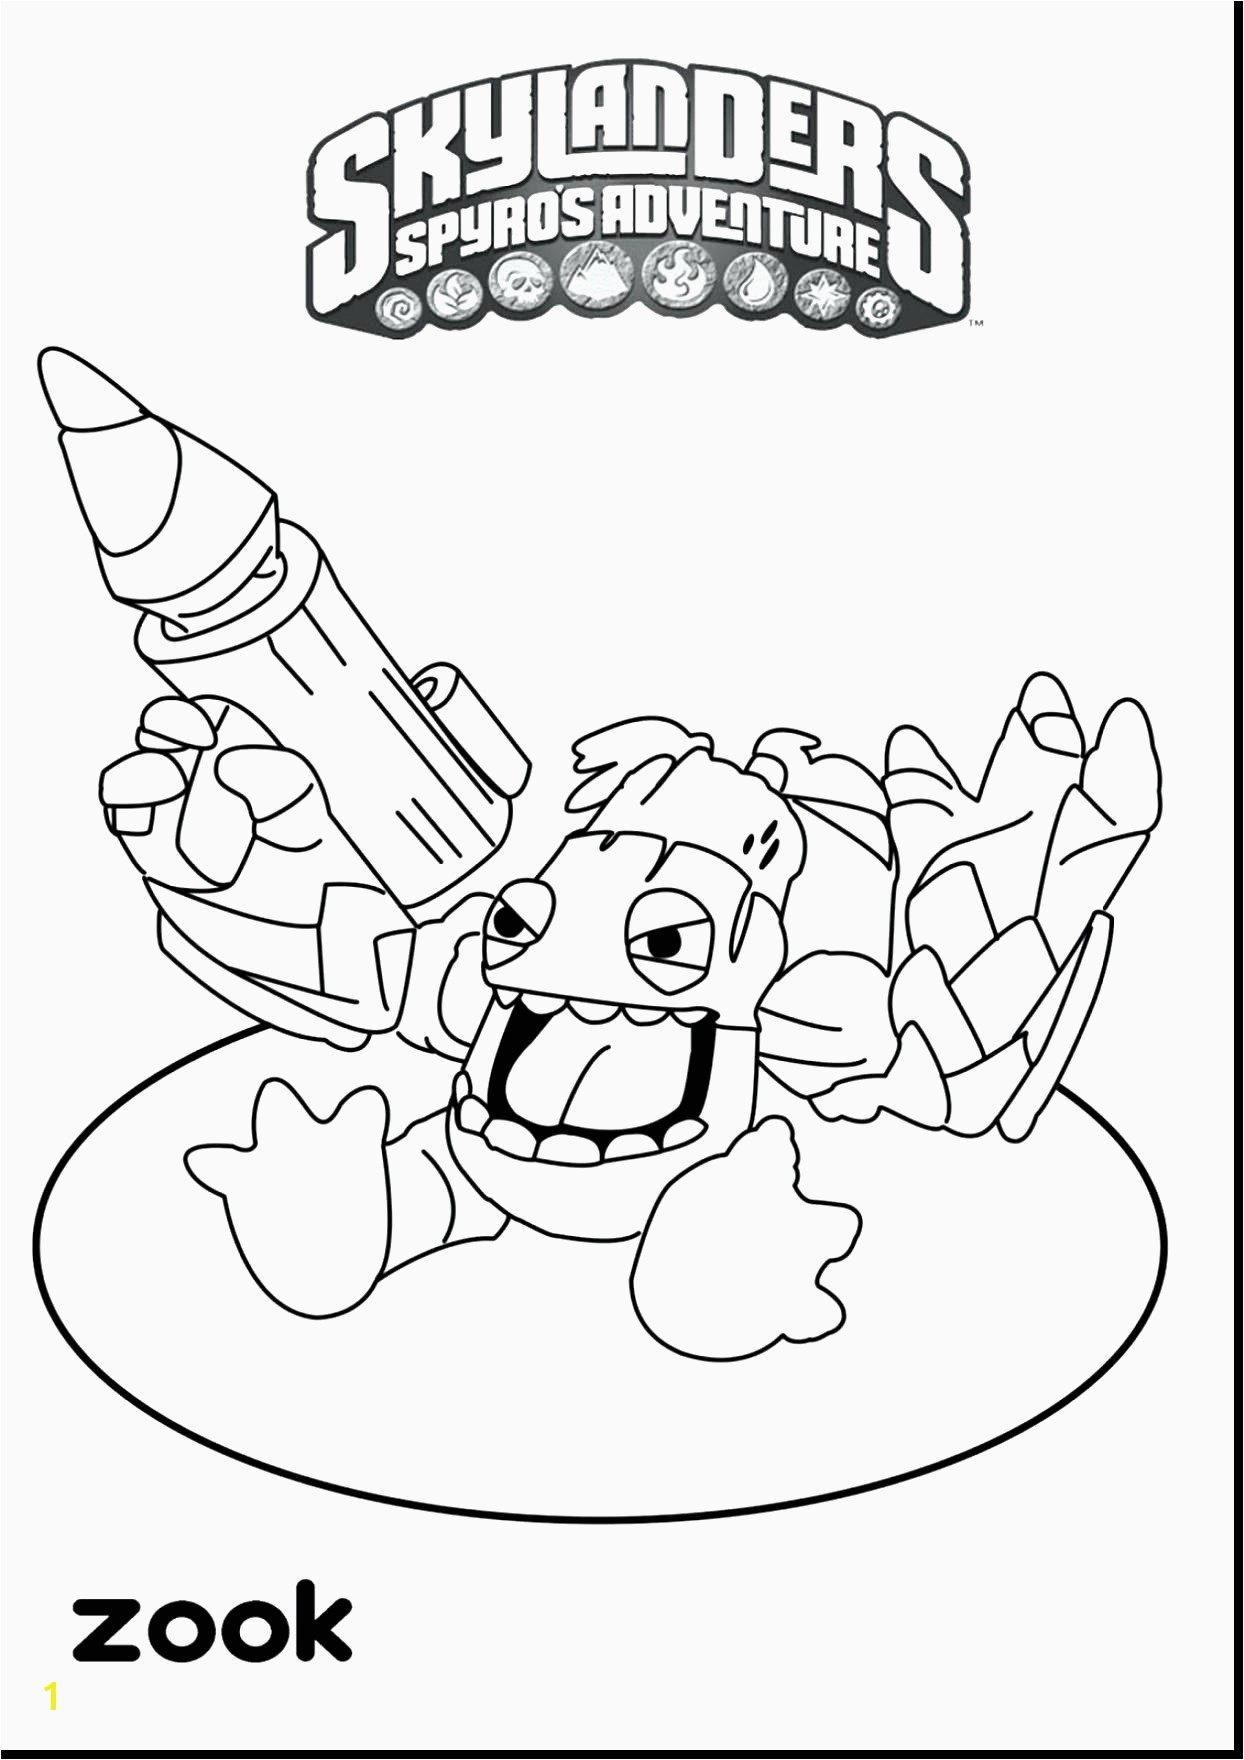 Zoo Animal Coloring Pages Awesome Animal Coloring Sheets Fresh I Pinimg originals 9f 2f 0d